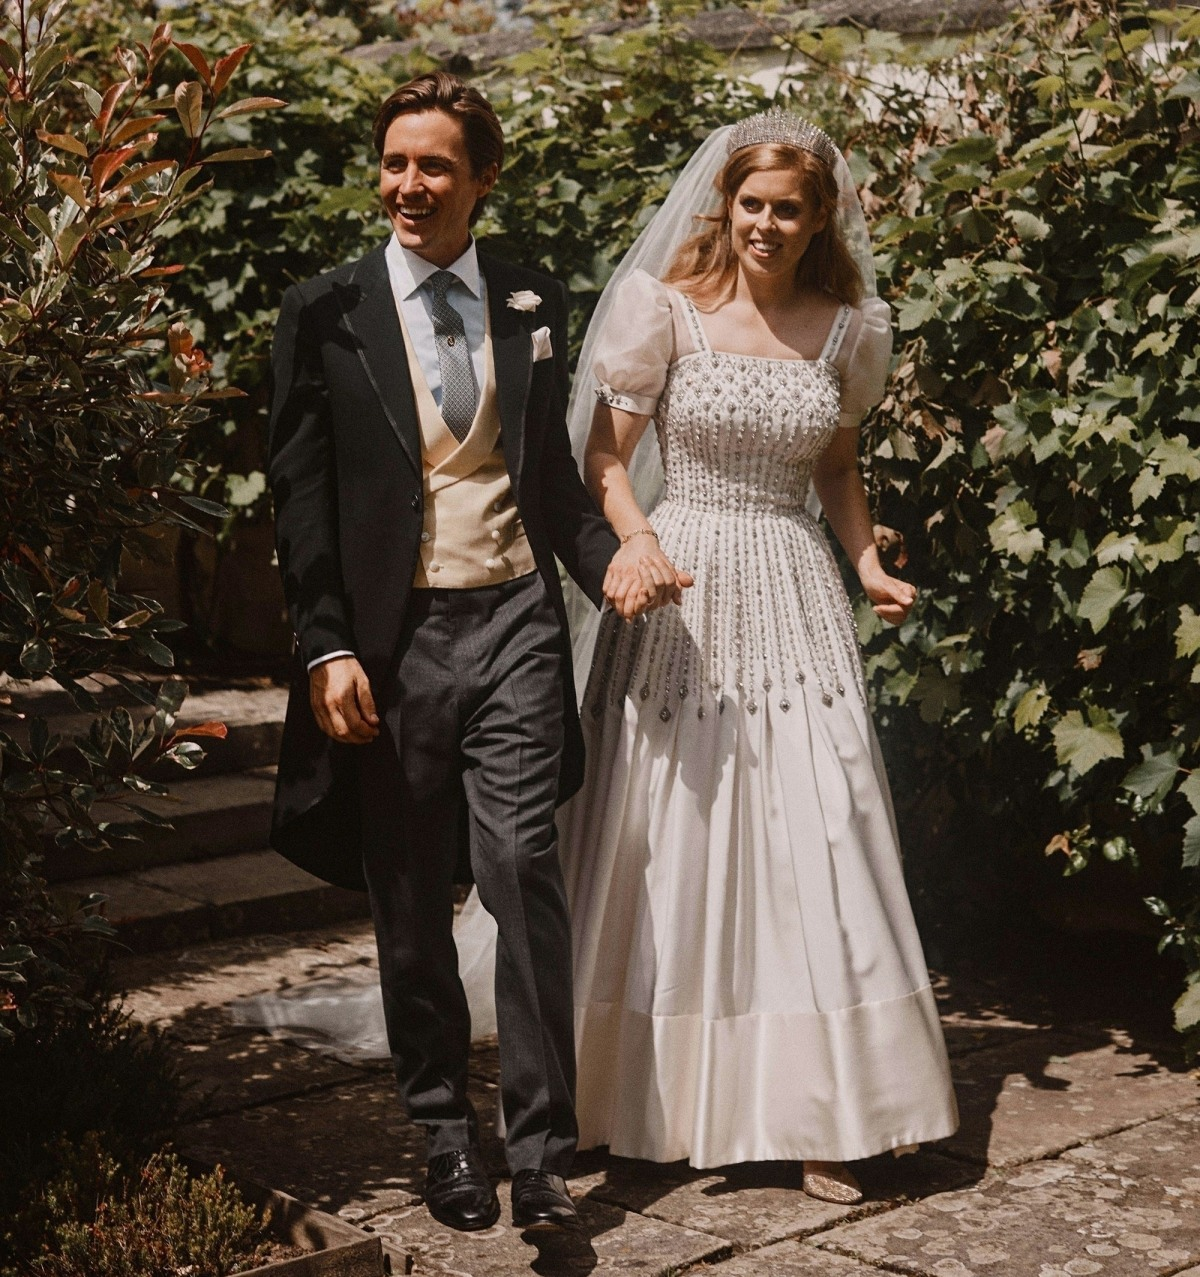 Official Wedding Photos of Princess Beatrice and Edoardo Mapelli Mozzi